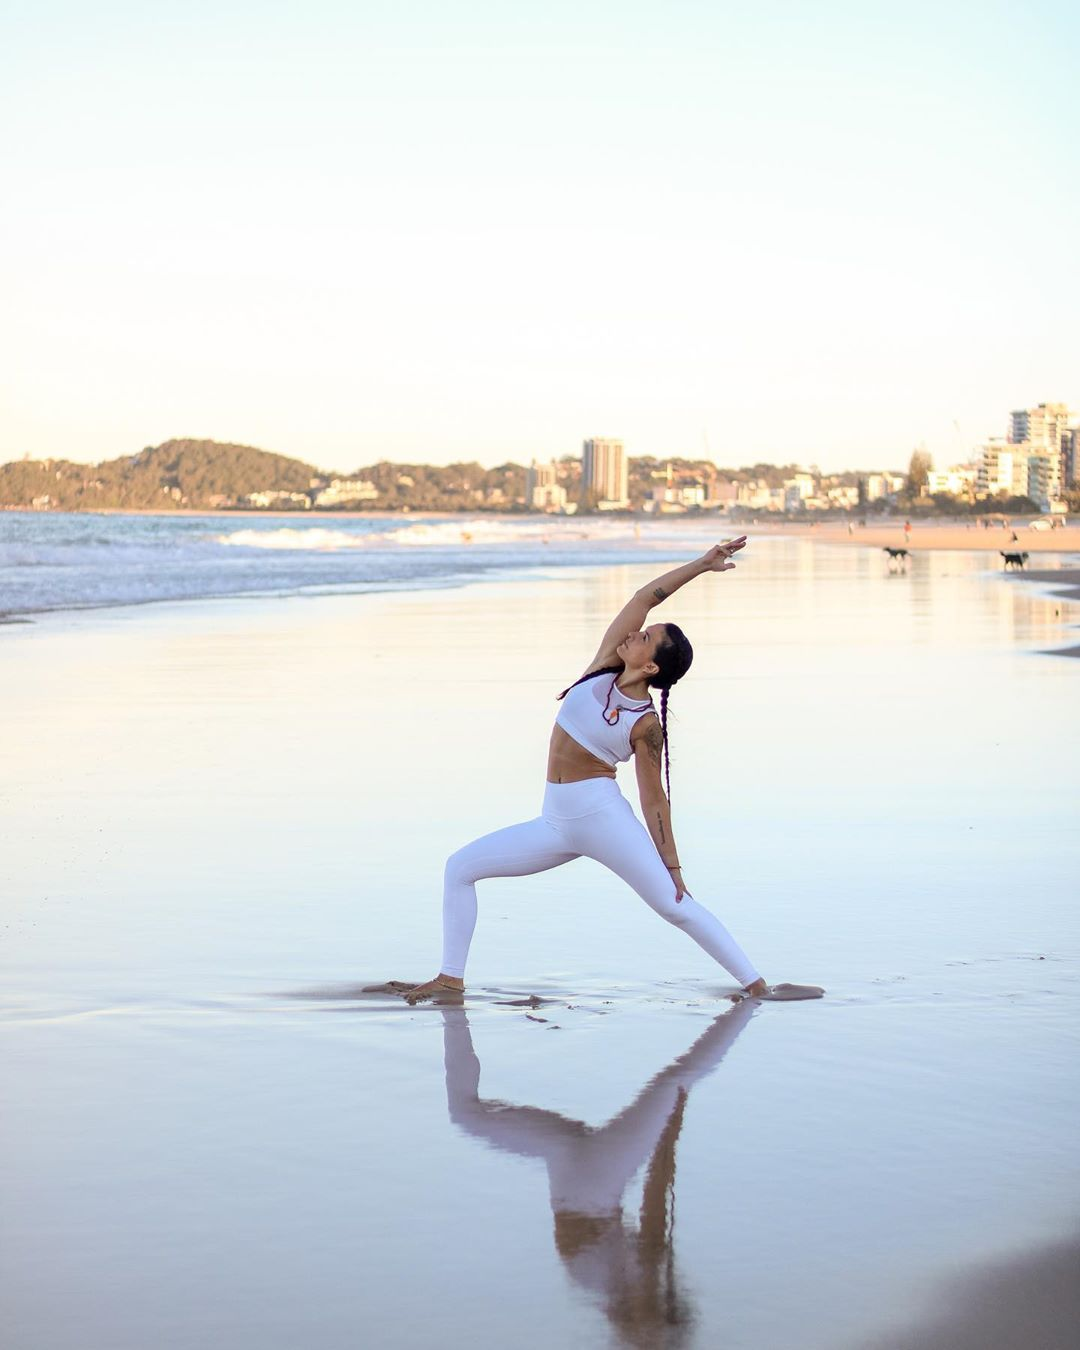 Virabhadrasana or Warrior Pose